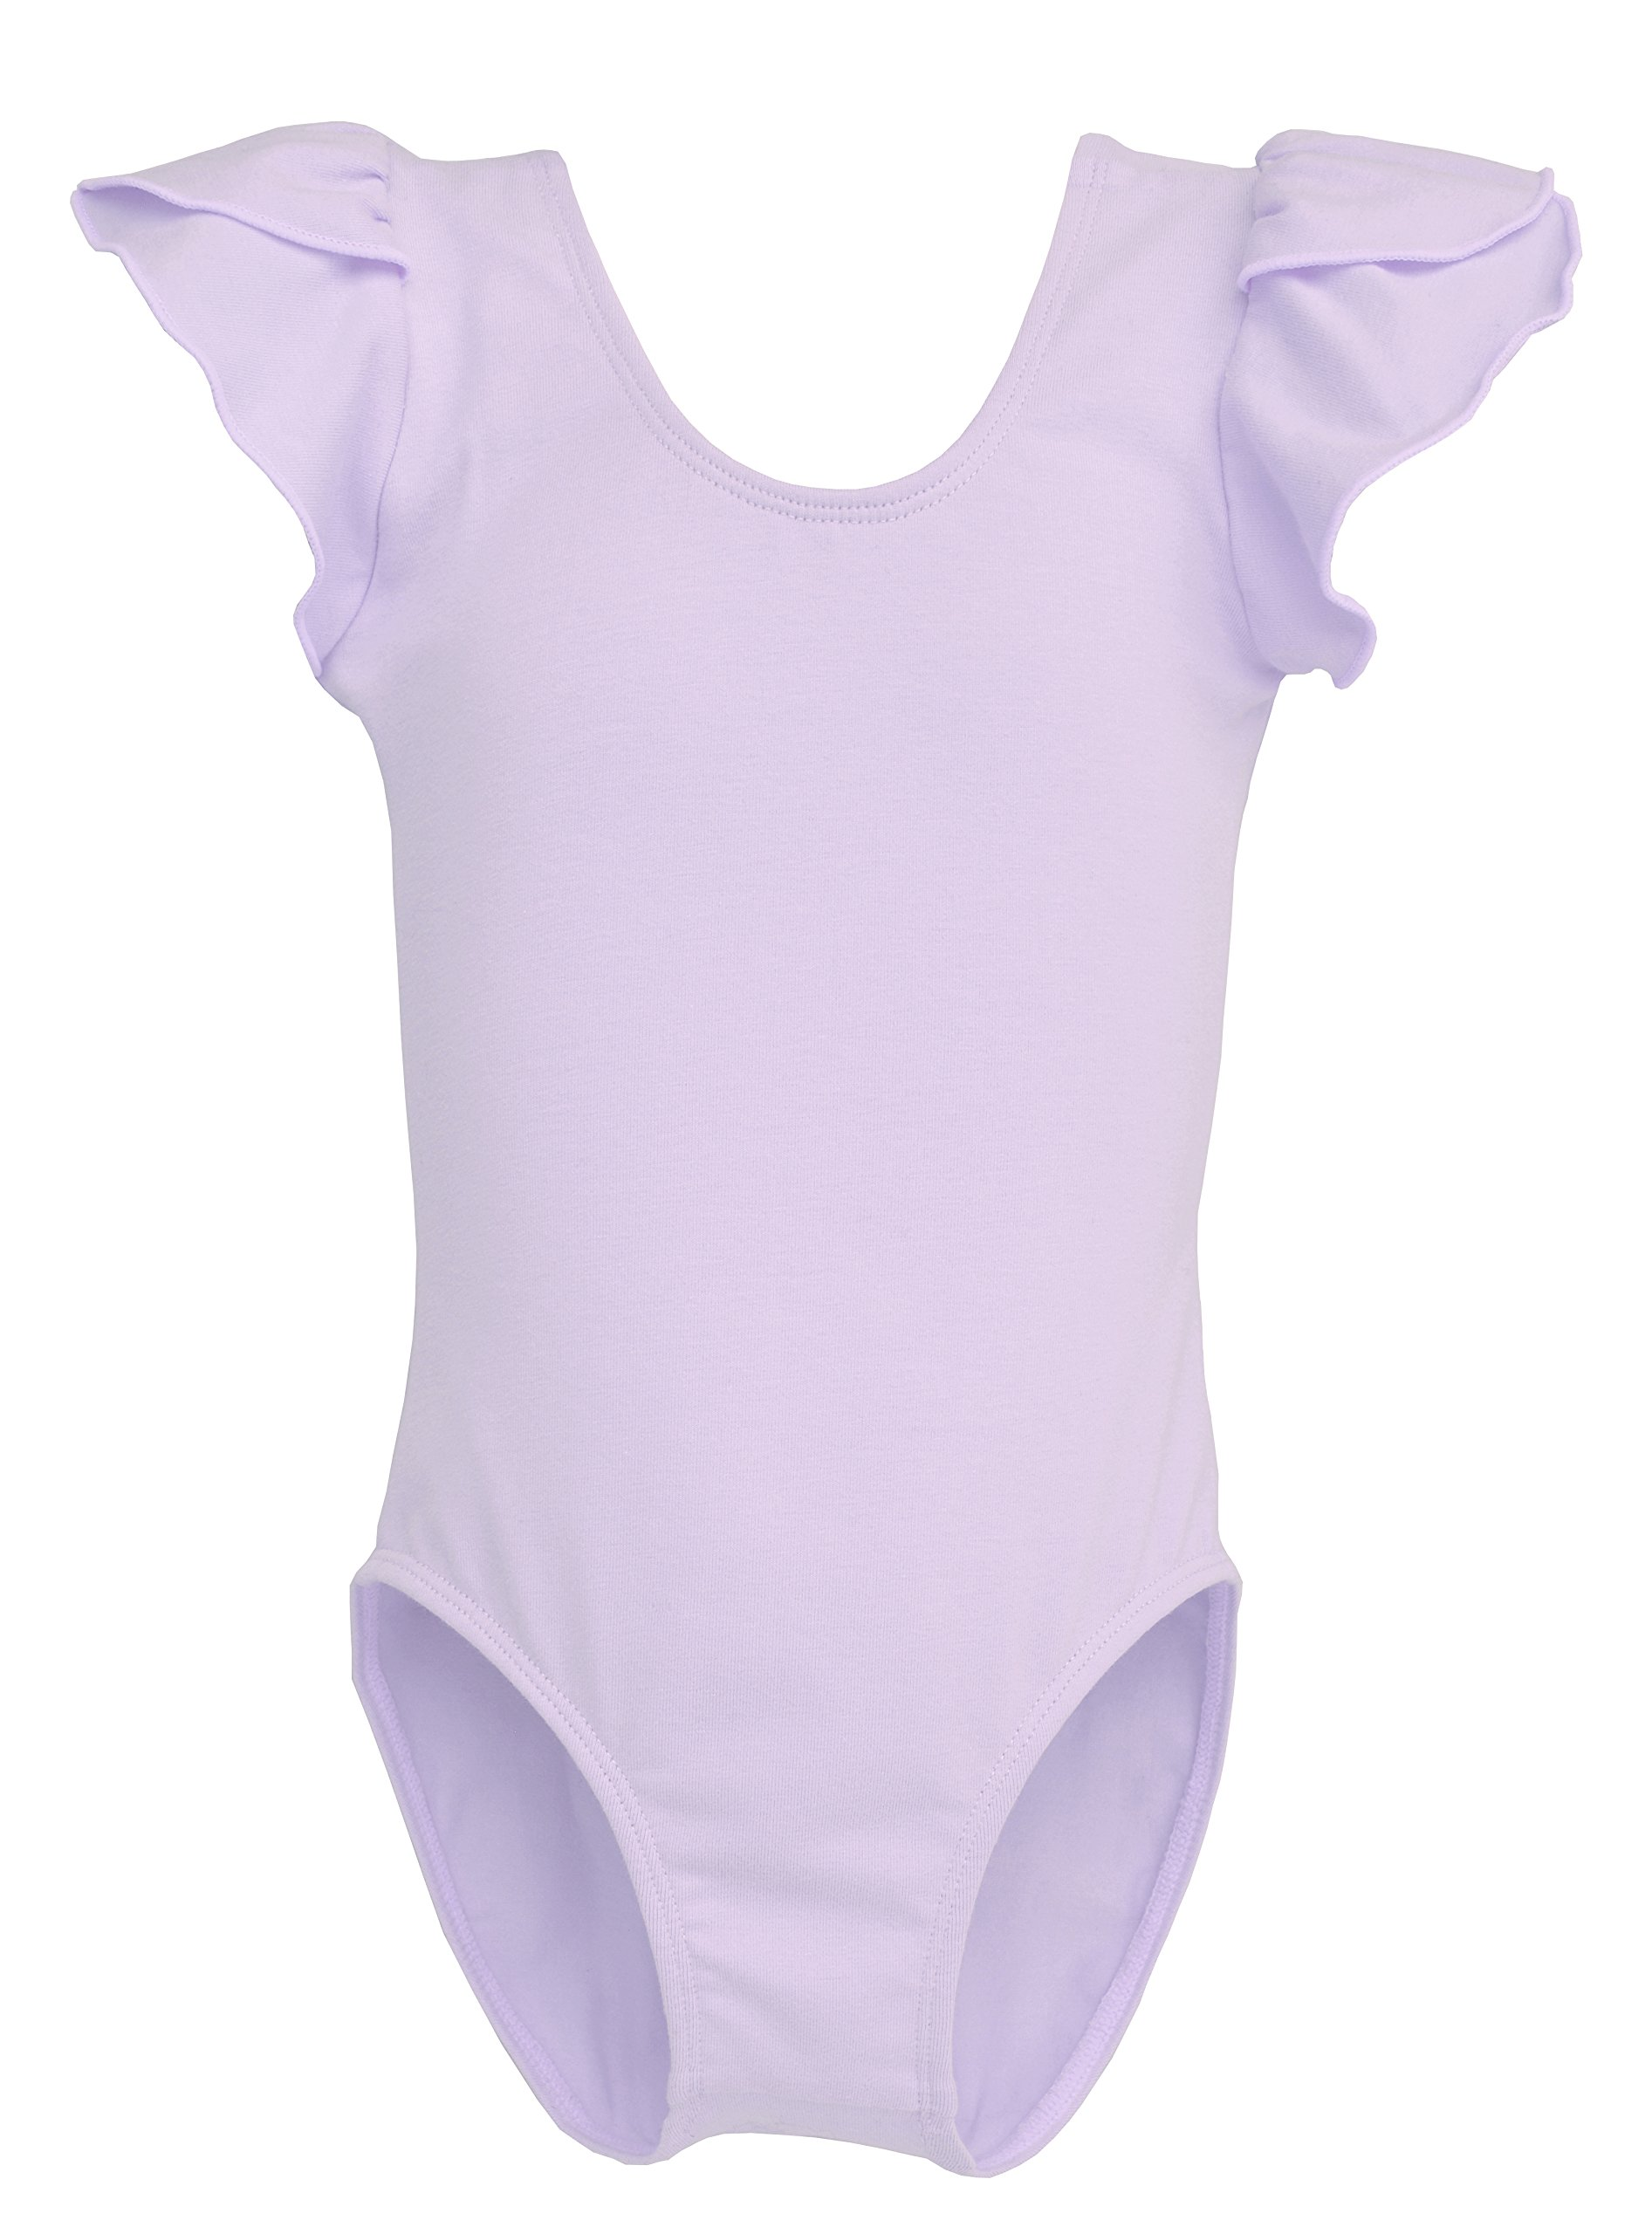 Dancina Leotard Ballet Girls Cap Sleeve Front Lined 2-3T Lavender